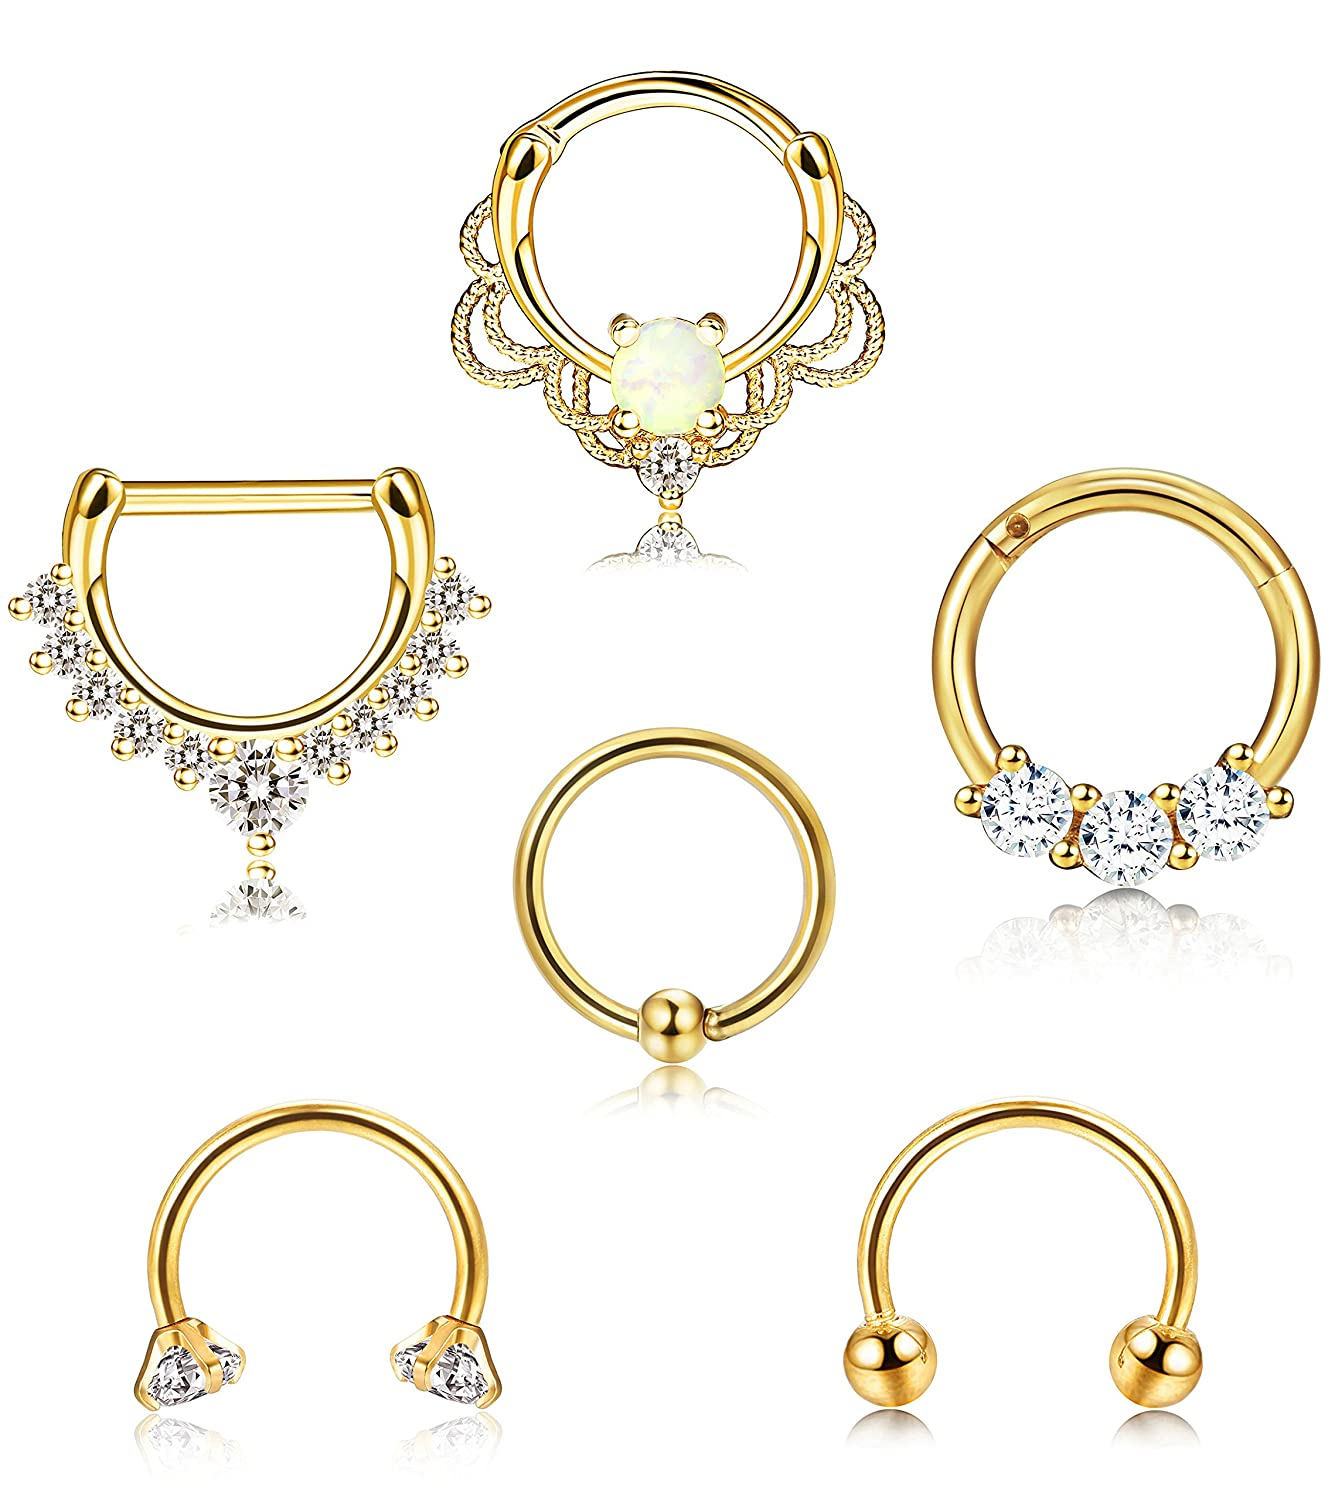 ORAZIO 6PCS 16G 316L Stainless Steel Septum Hoop Nose Ring 8MM Horseshoe Rings Cartilage Clicker Piercing Jewelry 3 Colors CC44-6S